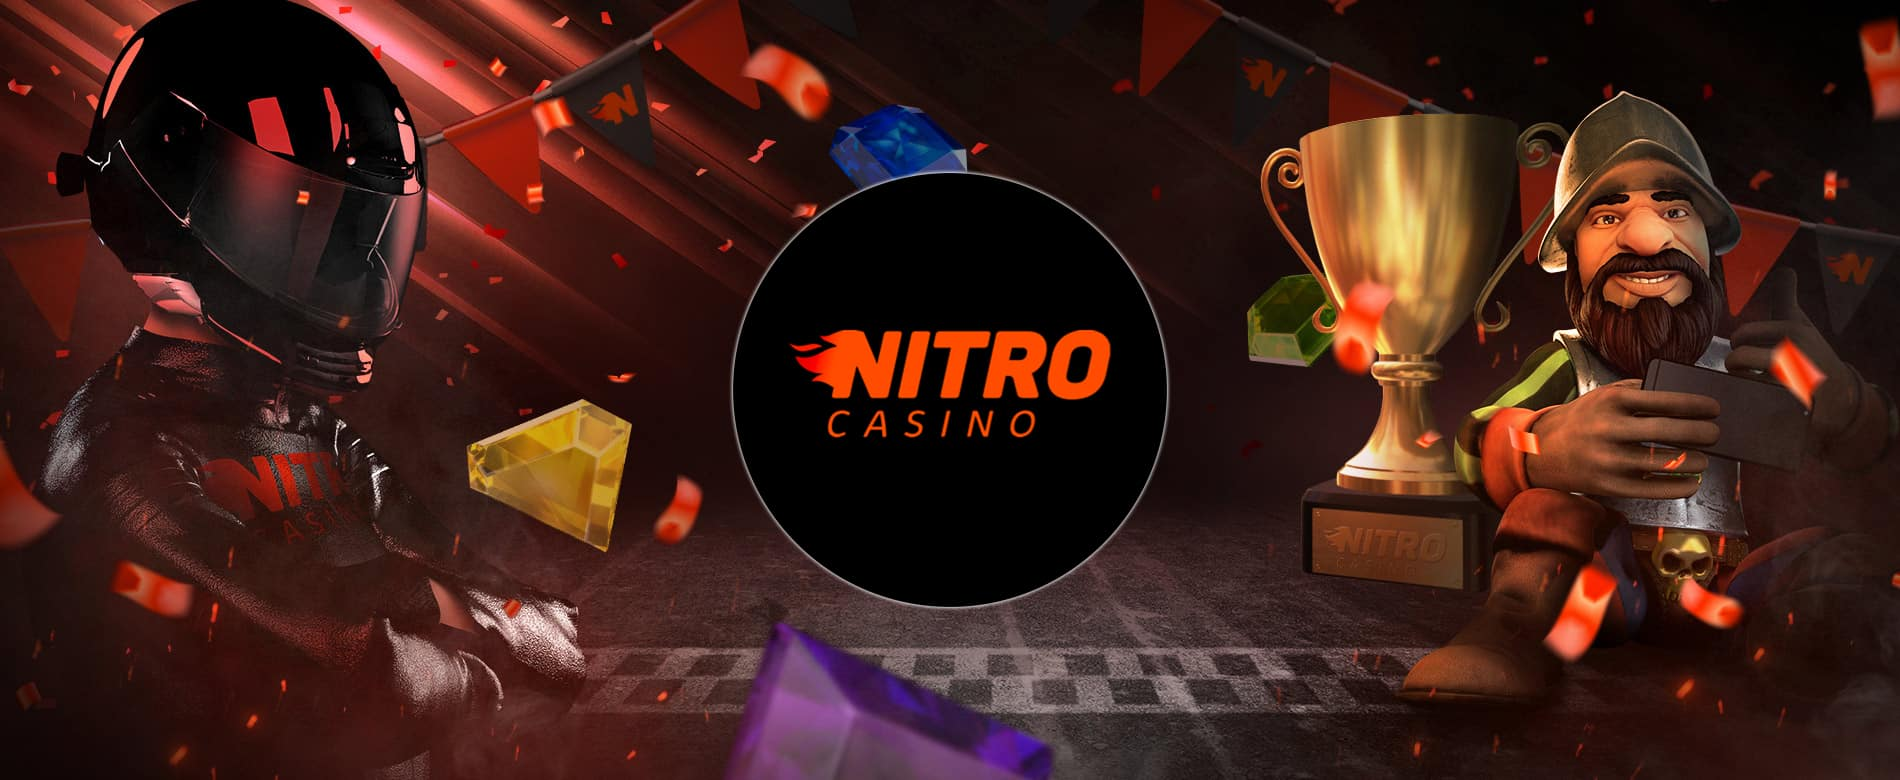 Nitro Casino 1 year birthday